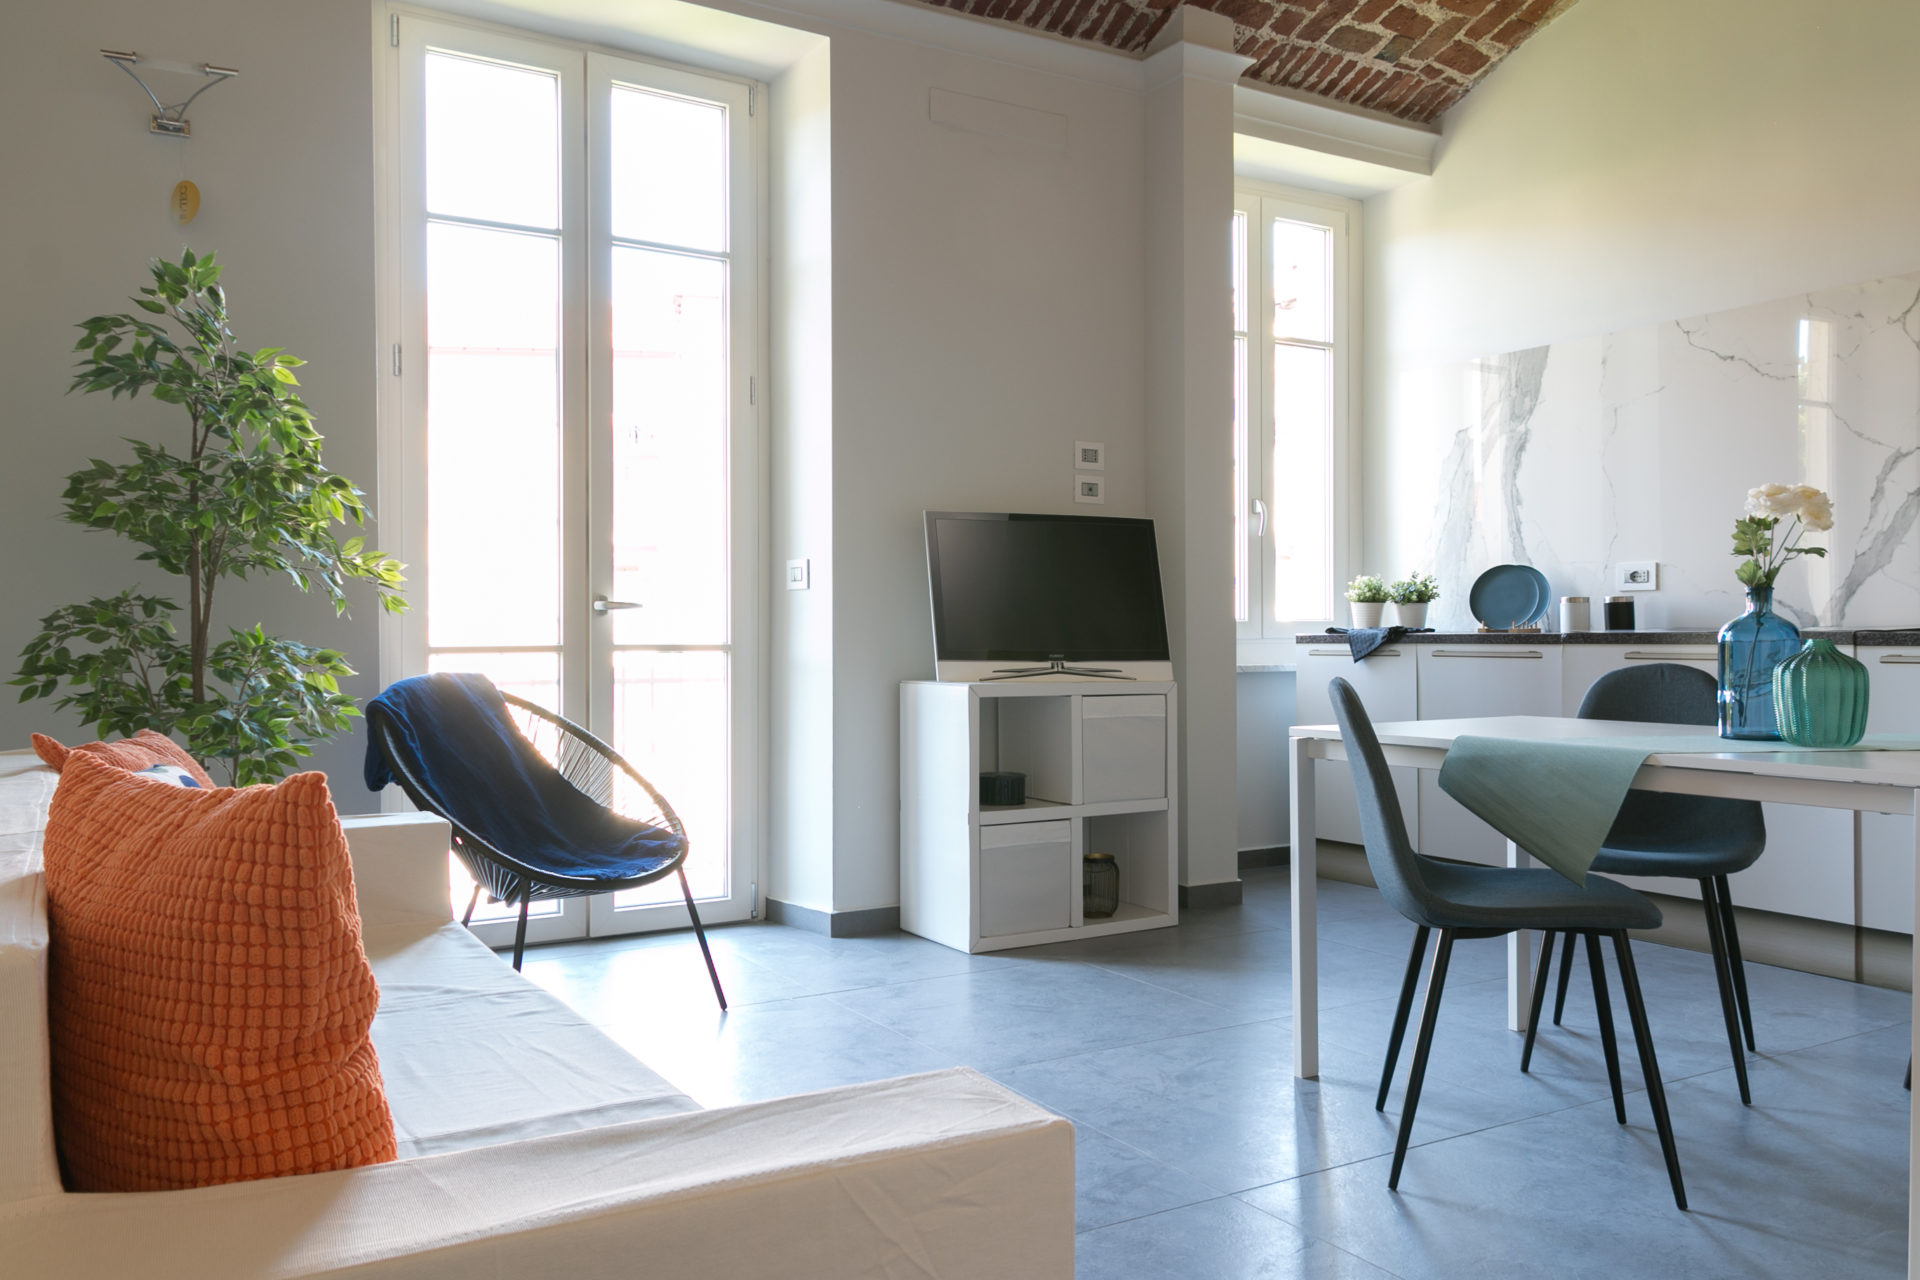 homeonstage-home-staging-casa-frejus_02